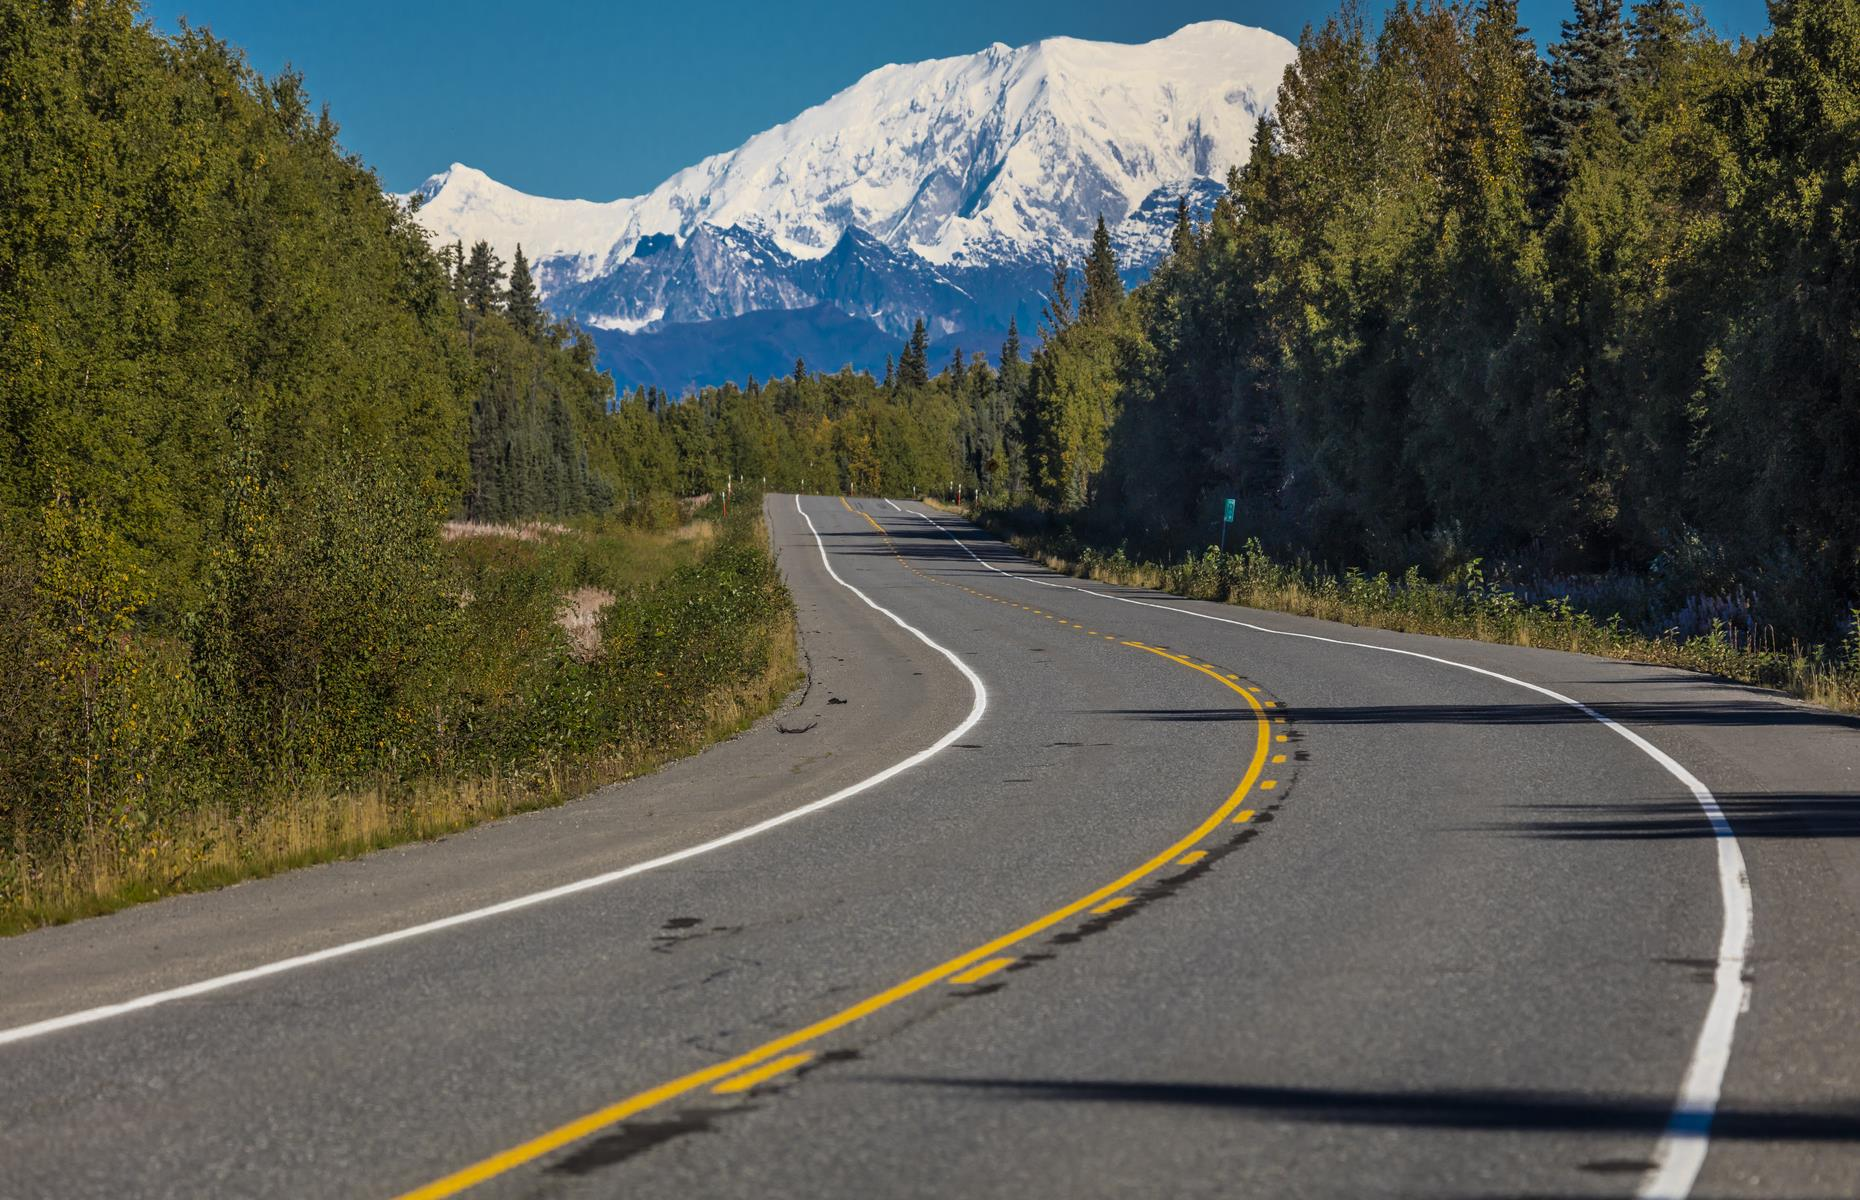 Slide 4 of 101: Due to its sheer size, Alaska doesn't lend itself well to quick weekend jaunts, but the 112-mile (180km) journey south from Fairbanks to Healy leads right to the gateway of Denali National Park. The legendary George Parks Highway is a destination in itself – all snow-crowned peaks and wide open roads. The journey takes around two hours at least, and in Healy, there are a handful of RV parks, hotels and restaurants. At present, be sure to check the opening status of food outlets and reserve accommodation before leaving.